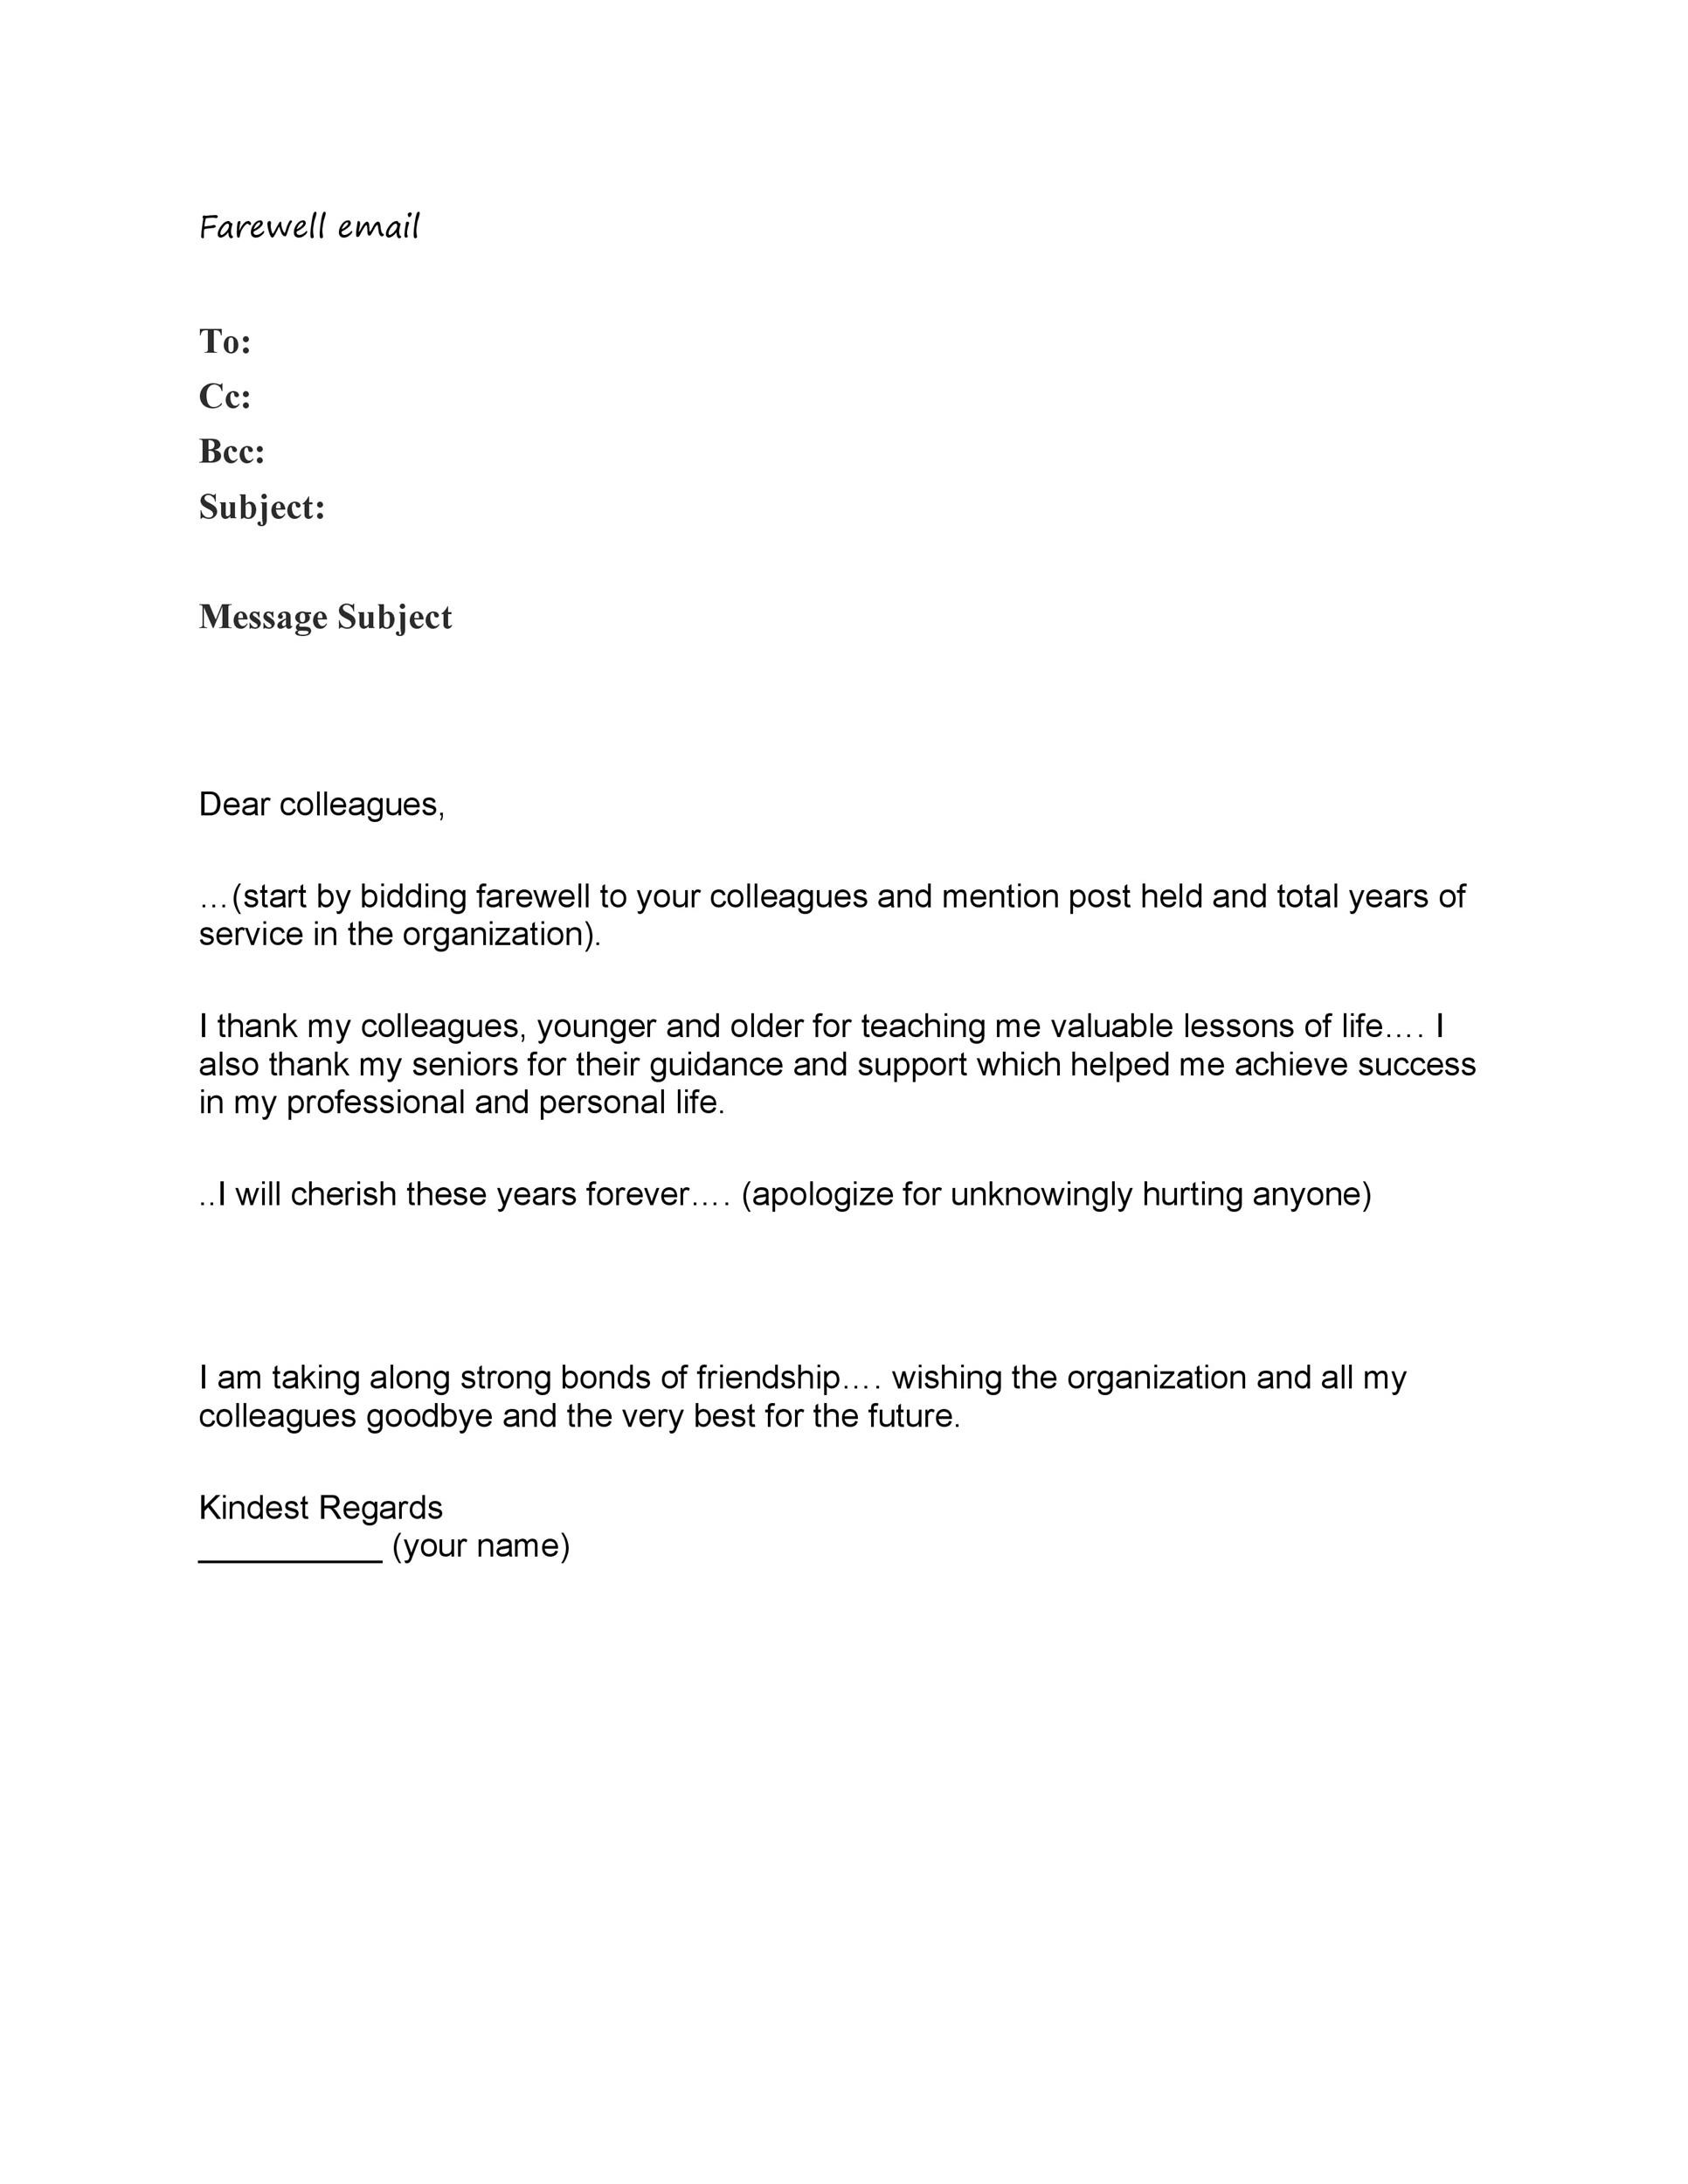 Printable Farewell Email Template 15